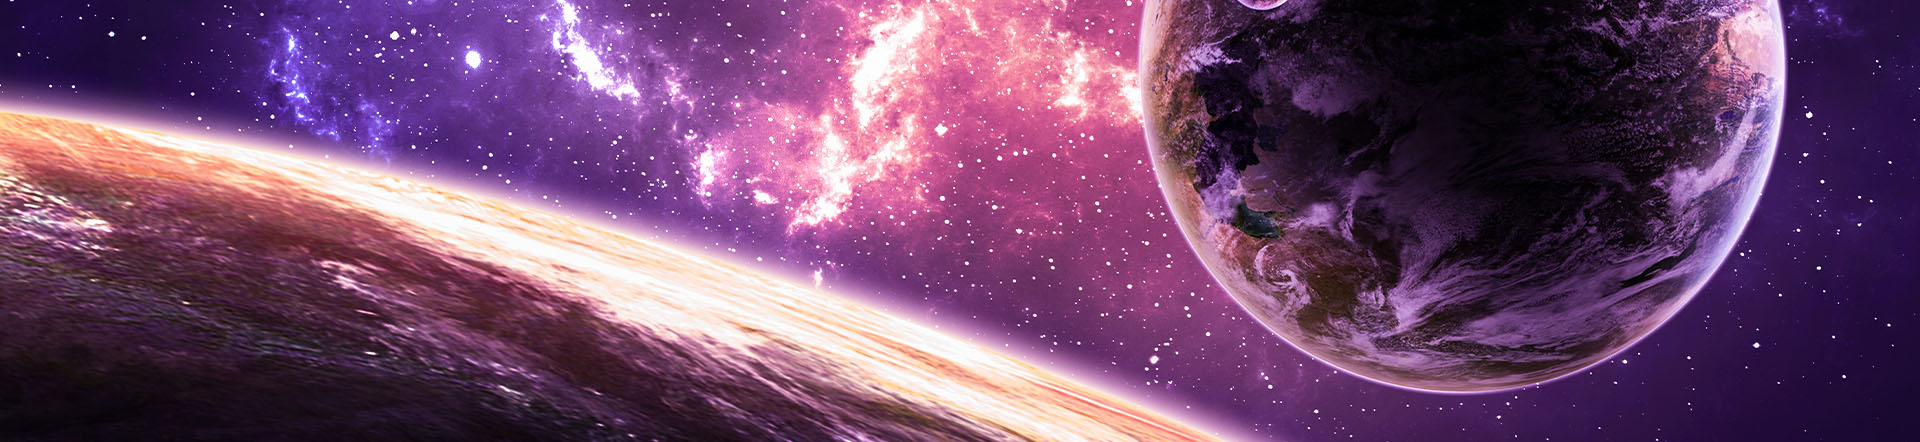 Tough Shift Romance Novel Banner with Space and Planets